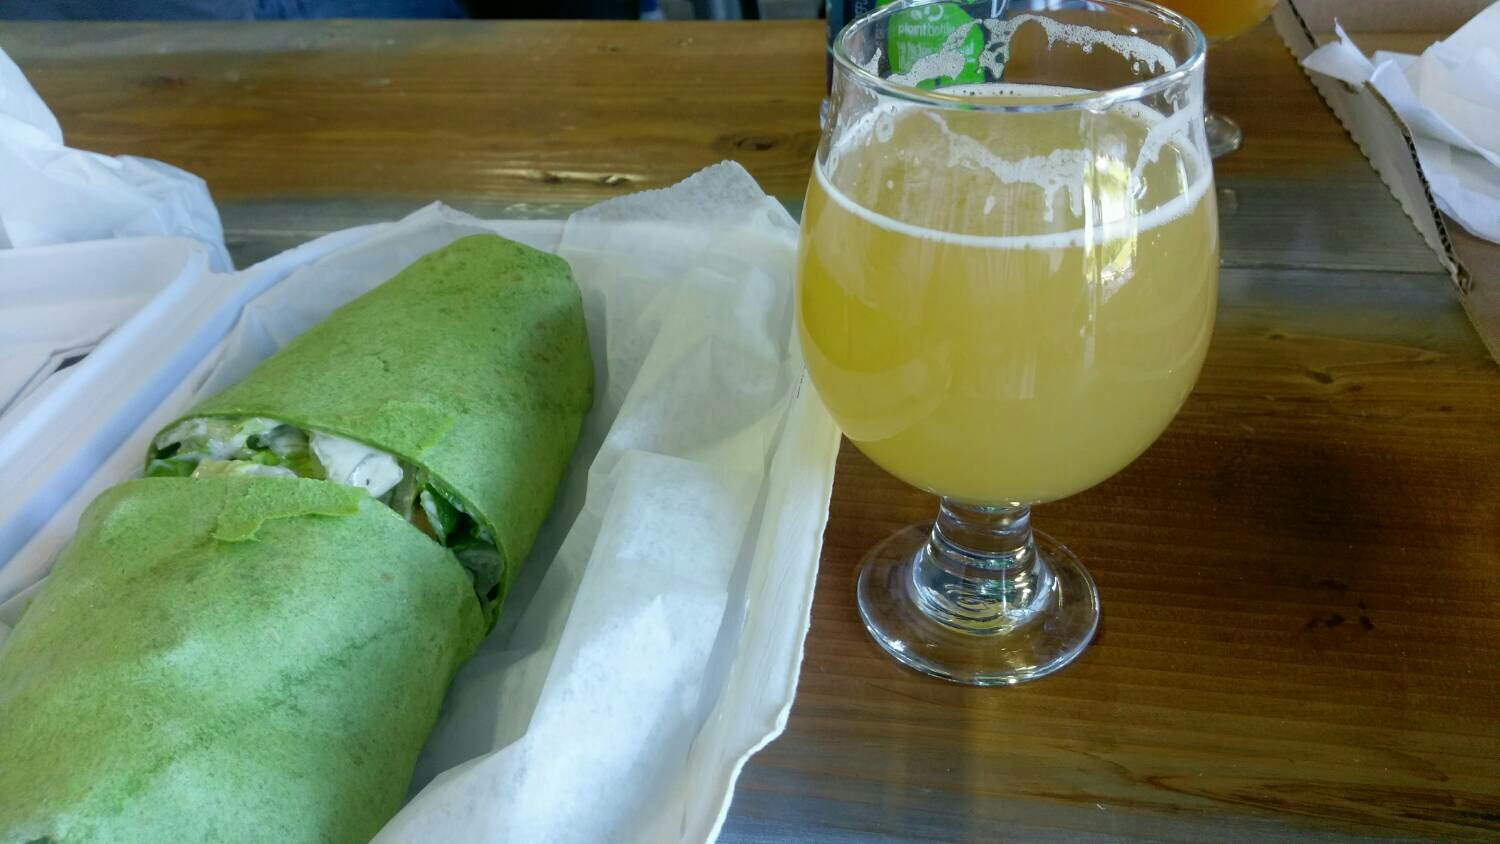 Santini's Chicken Wrap and a Strawberry-Lemon Kolsch.